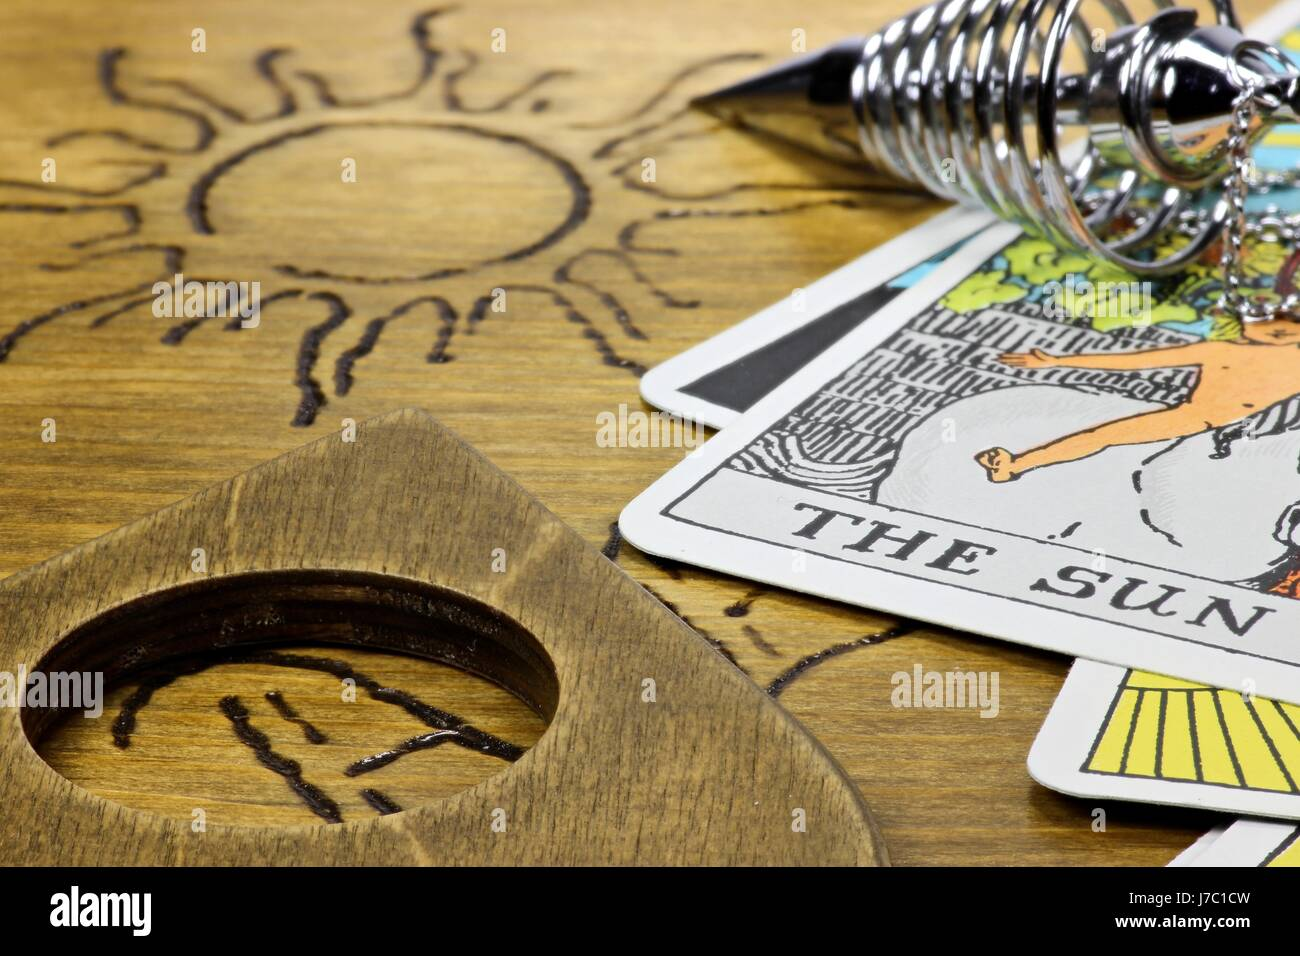 the sun shown by fortune telling accessories - Stock Image